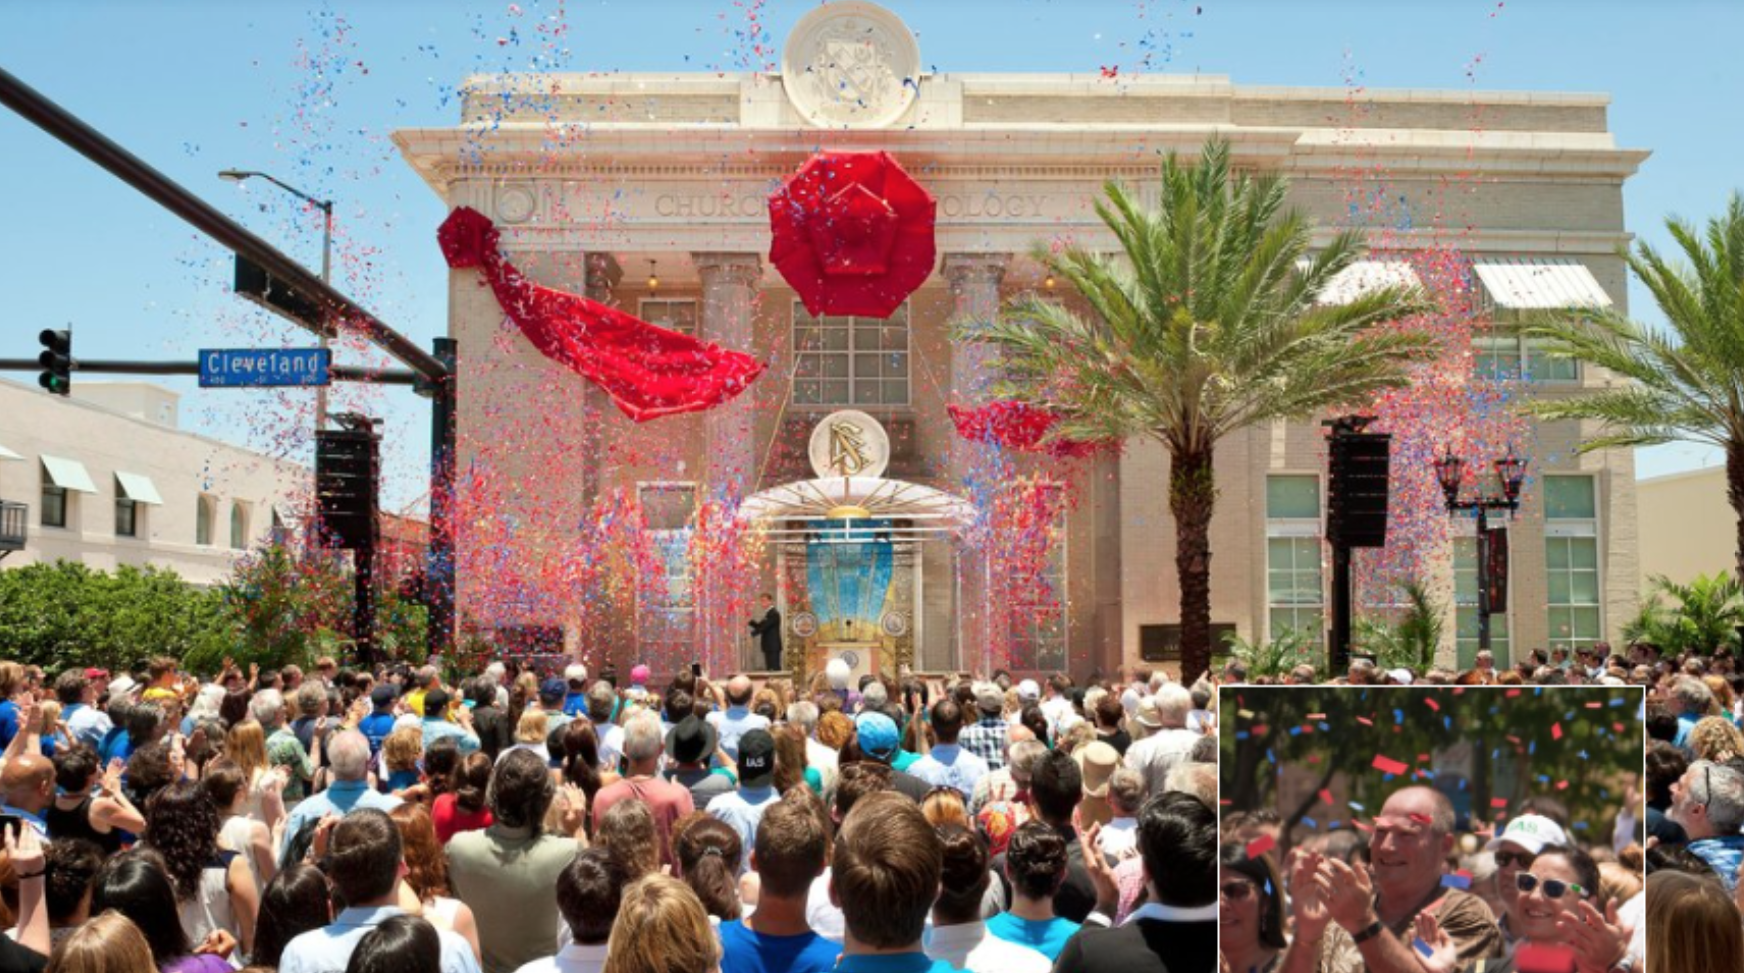 confetti cannona for Scientology in tampa